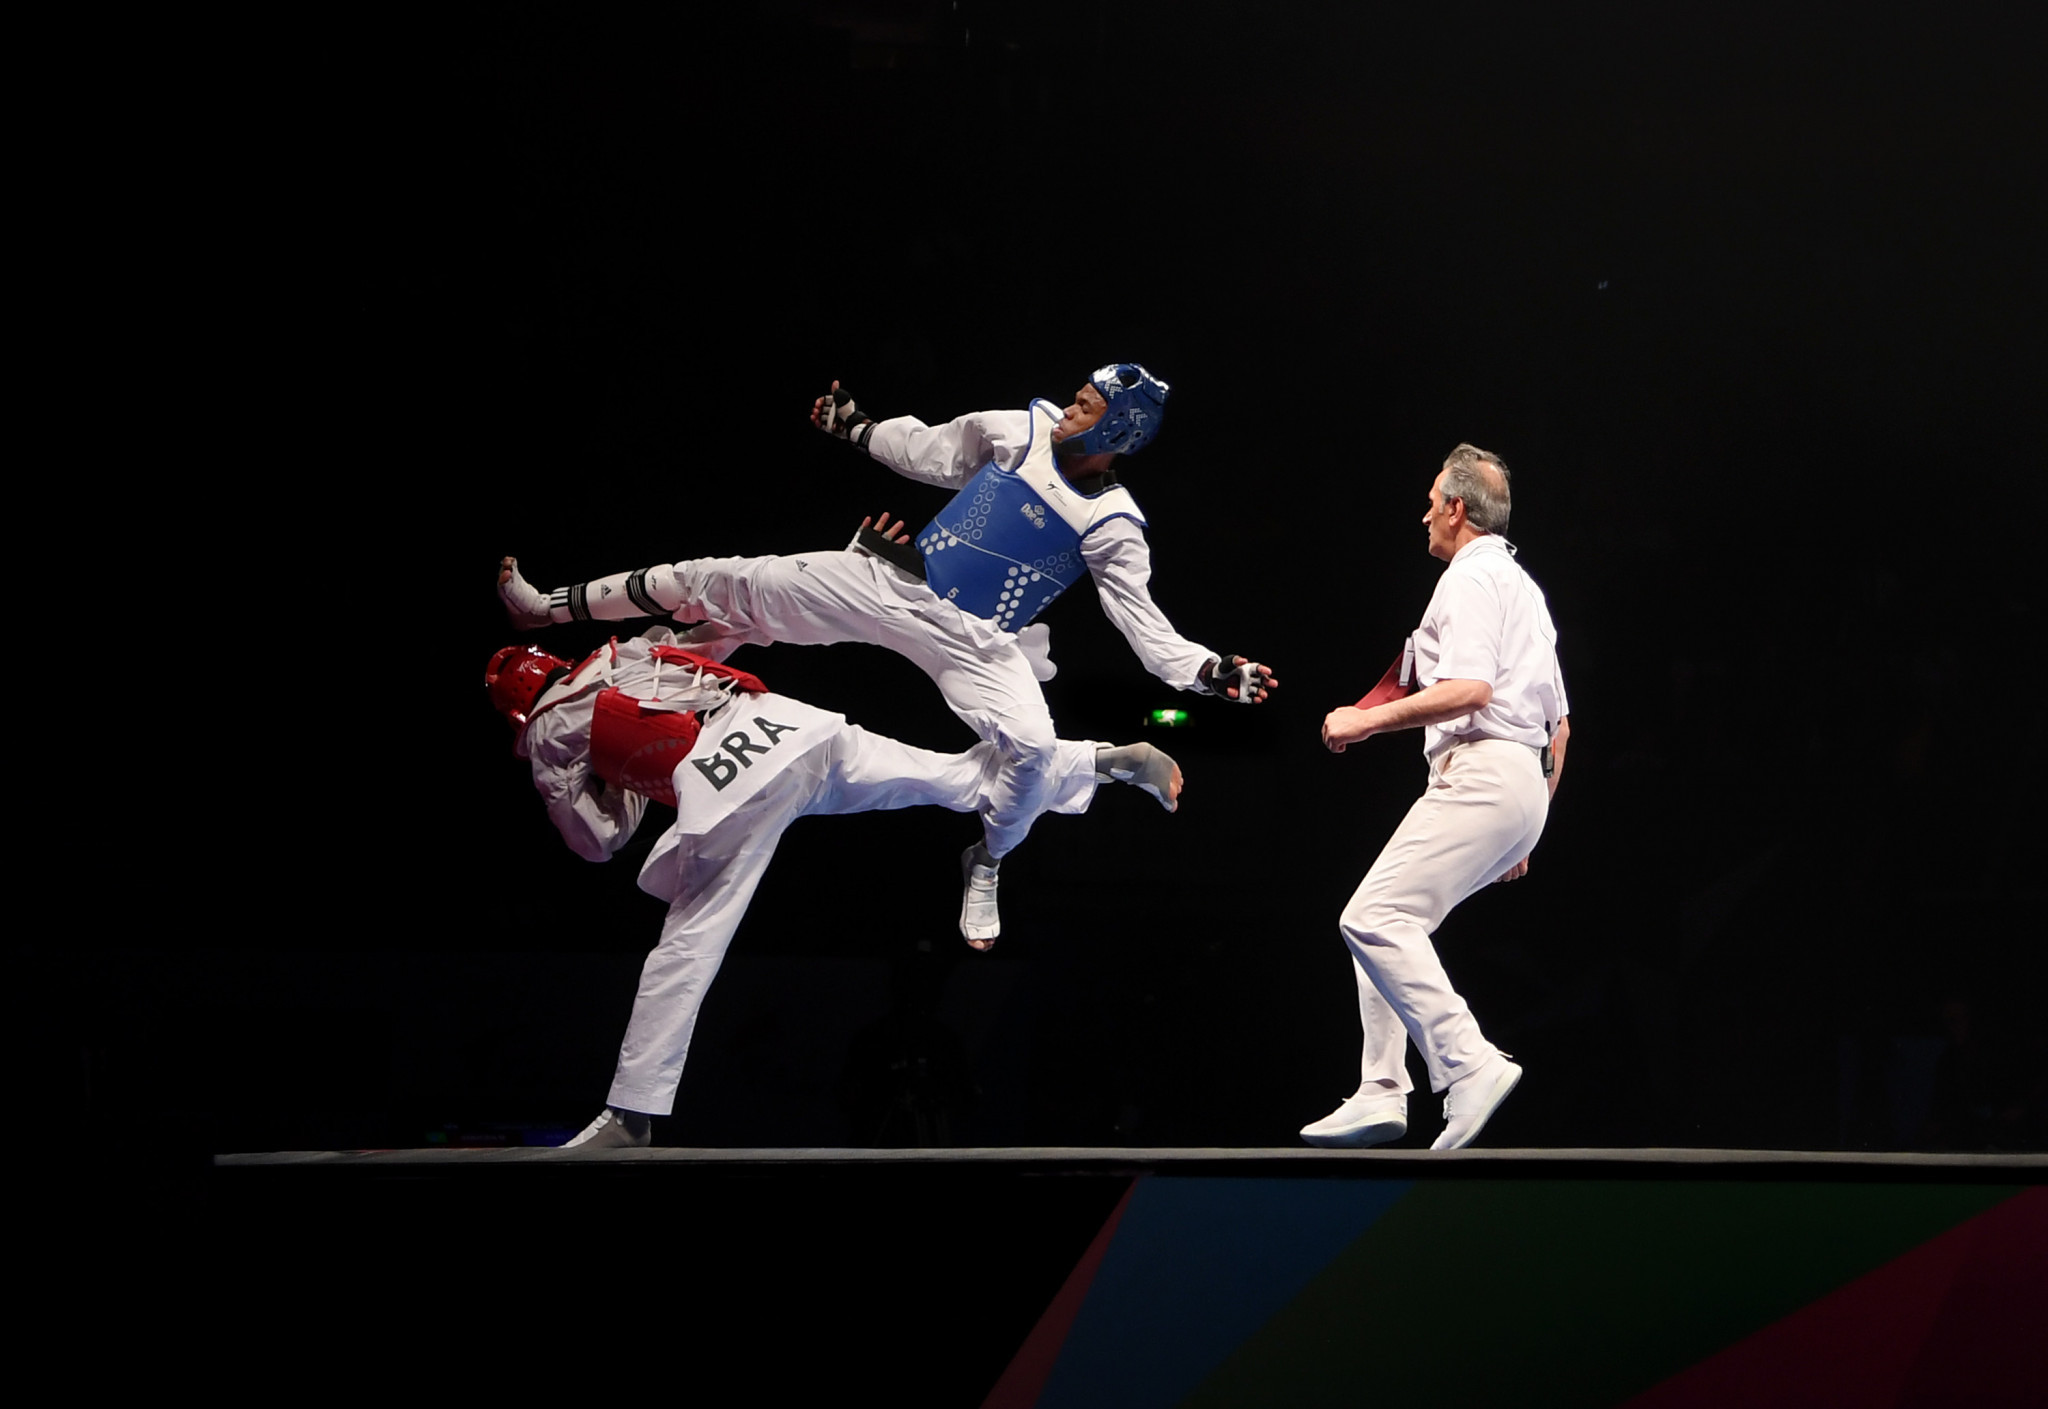 He defeated Mexico's Carlos Sansores in the gold medal bout ©Getty Images